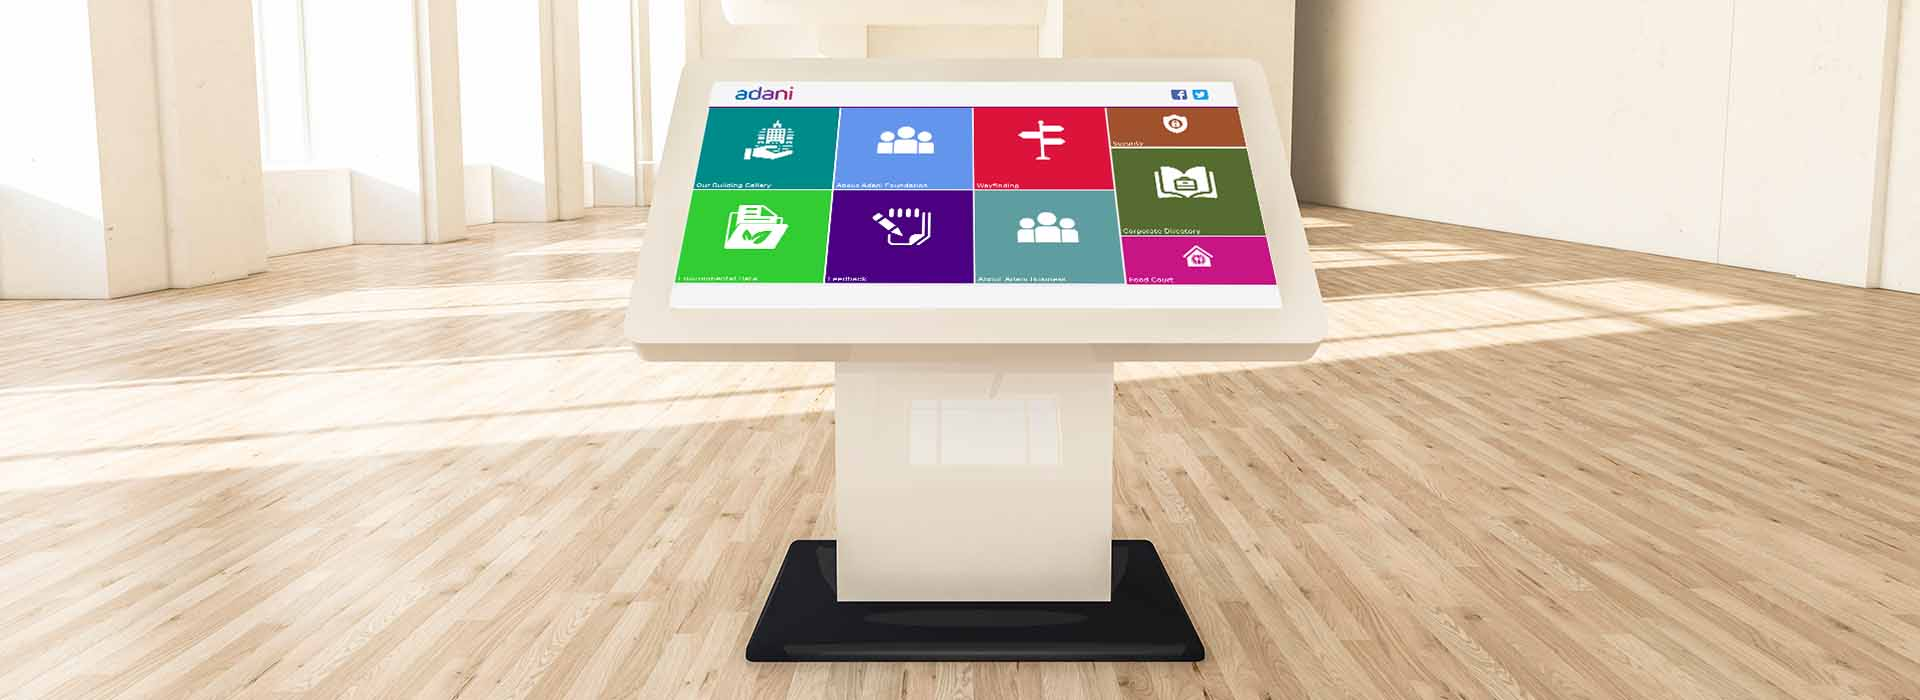 Interactive Digital Signage Solutions